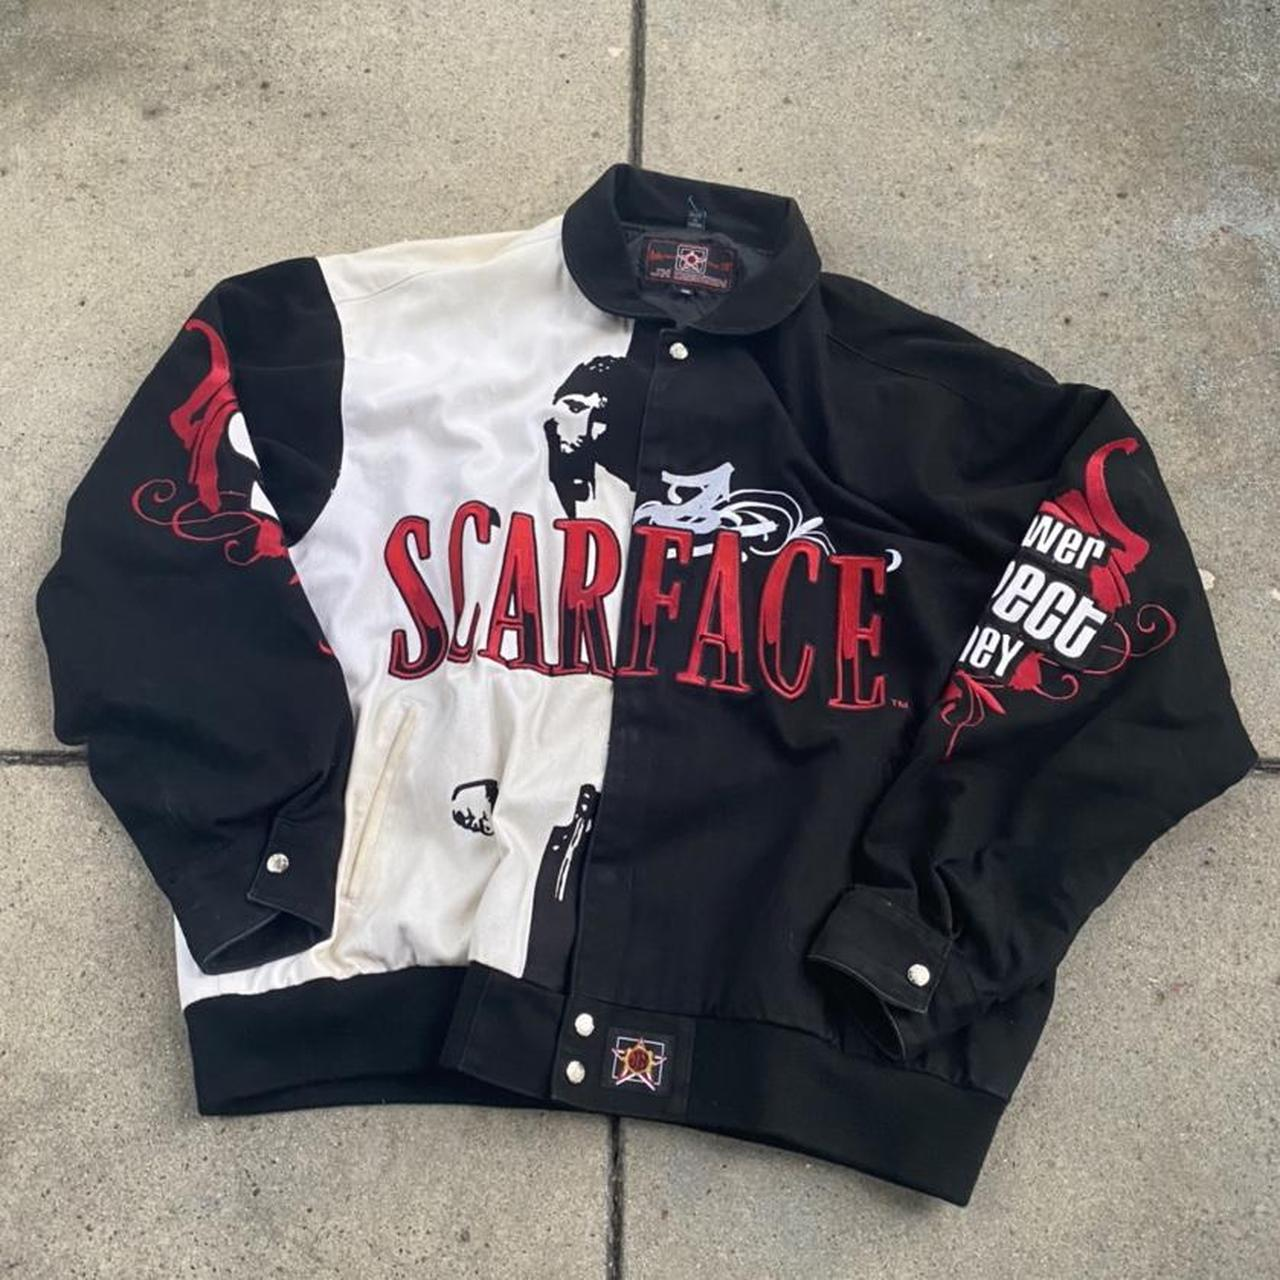 Product Image 1 - Vintage Scarface x JH Design